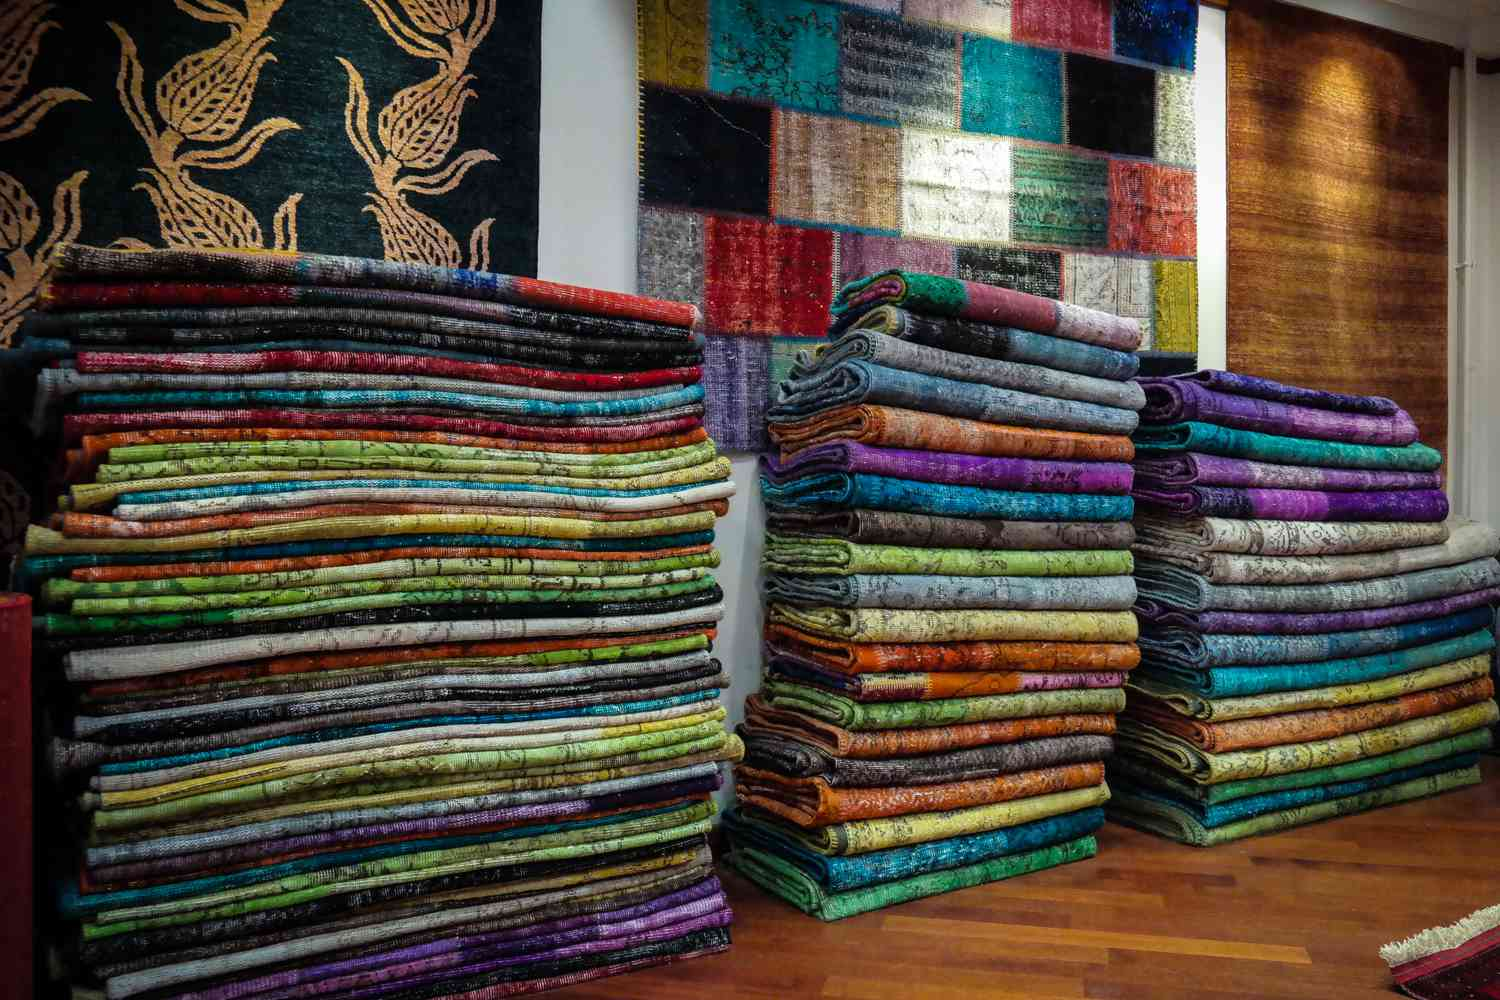 Stacks of quilt fabric against the wall